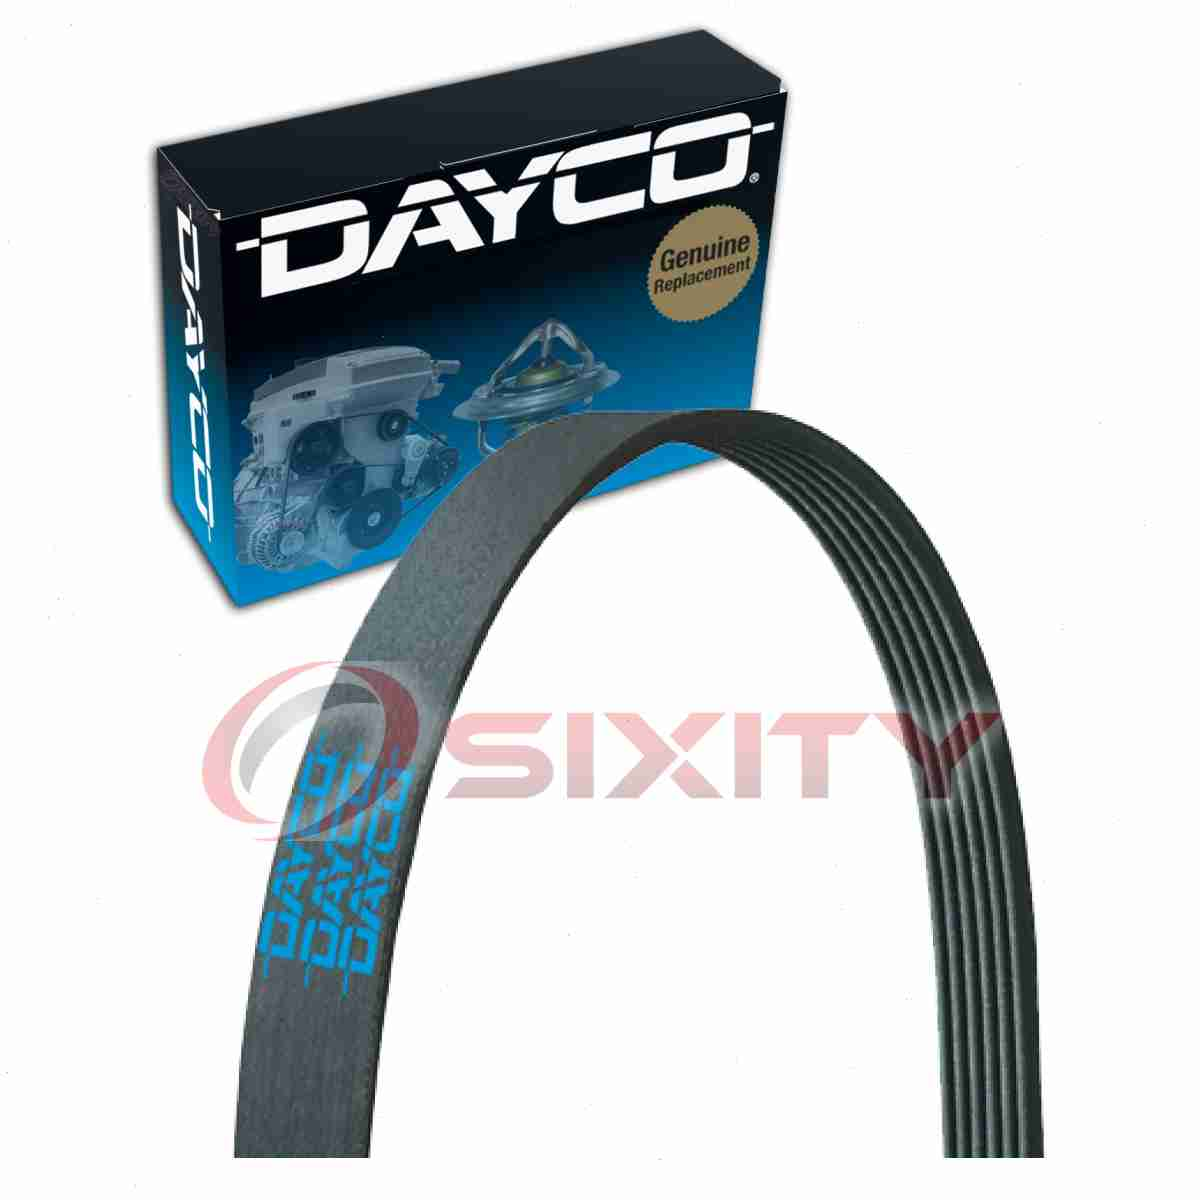 hight resolution of built for passenger cars and light duty trucks the extensive line of dayco poly rib serpentine belts are engineered for high mileage demanding drives